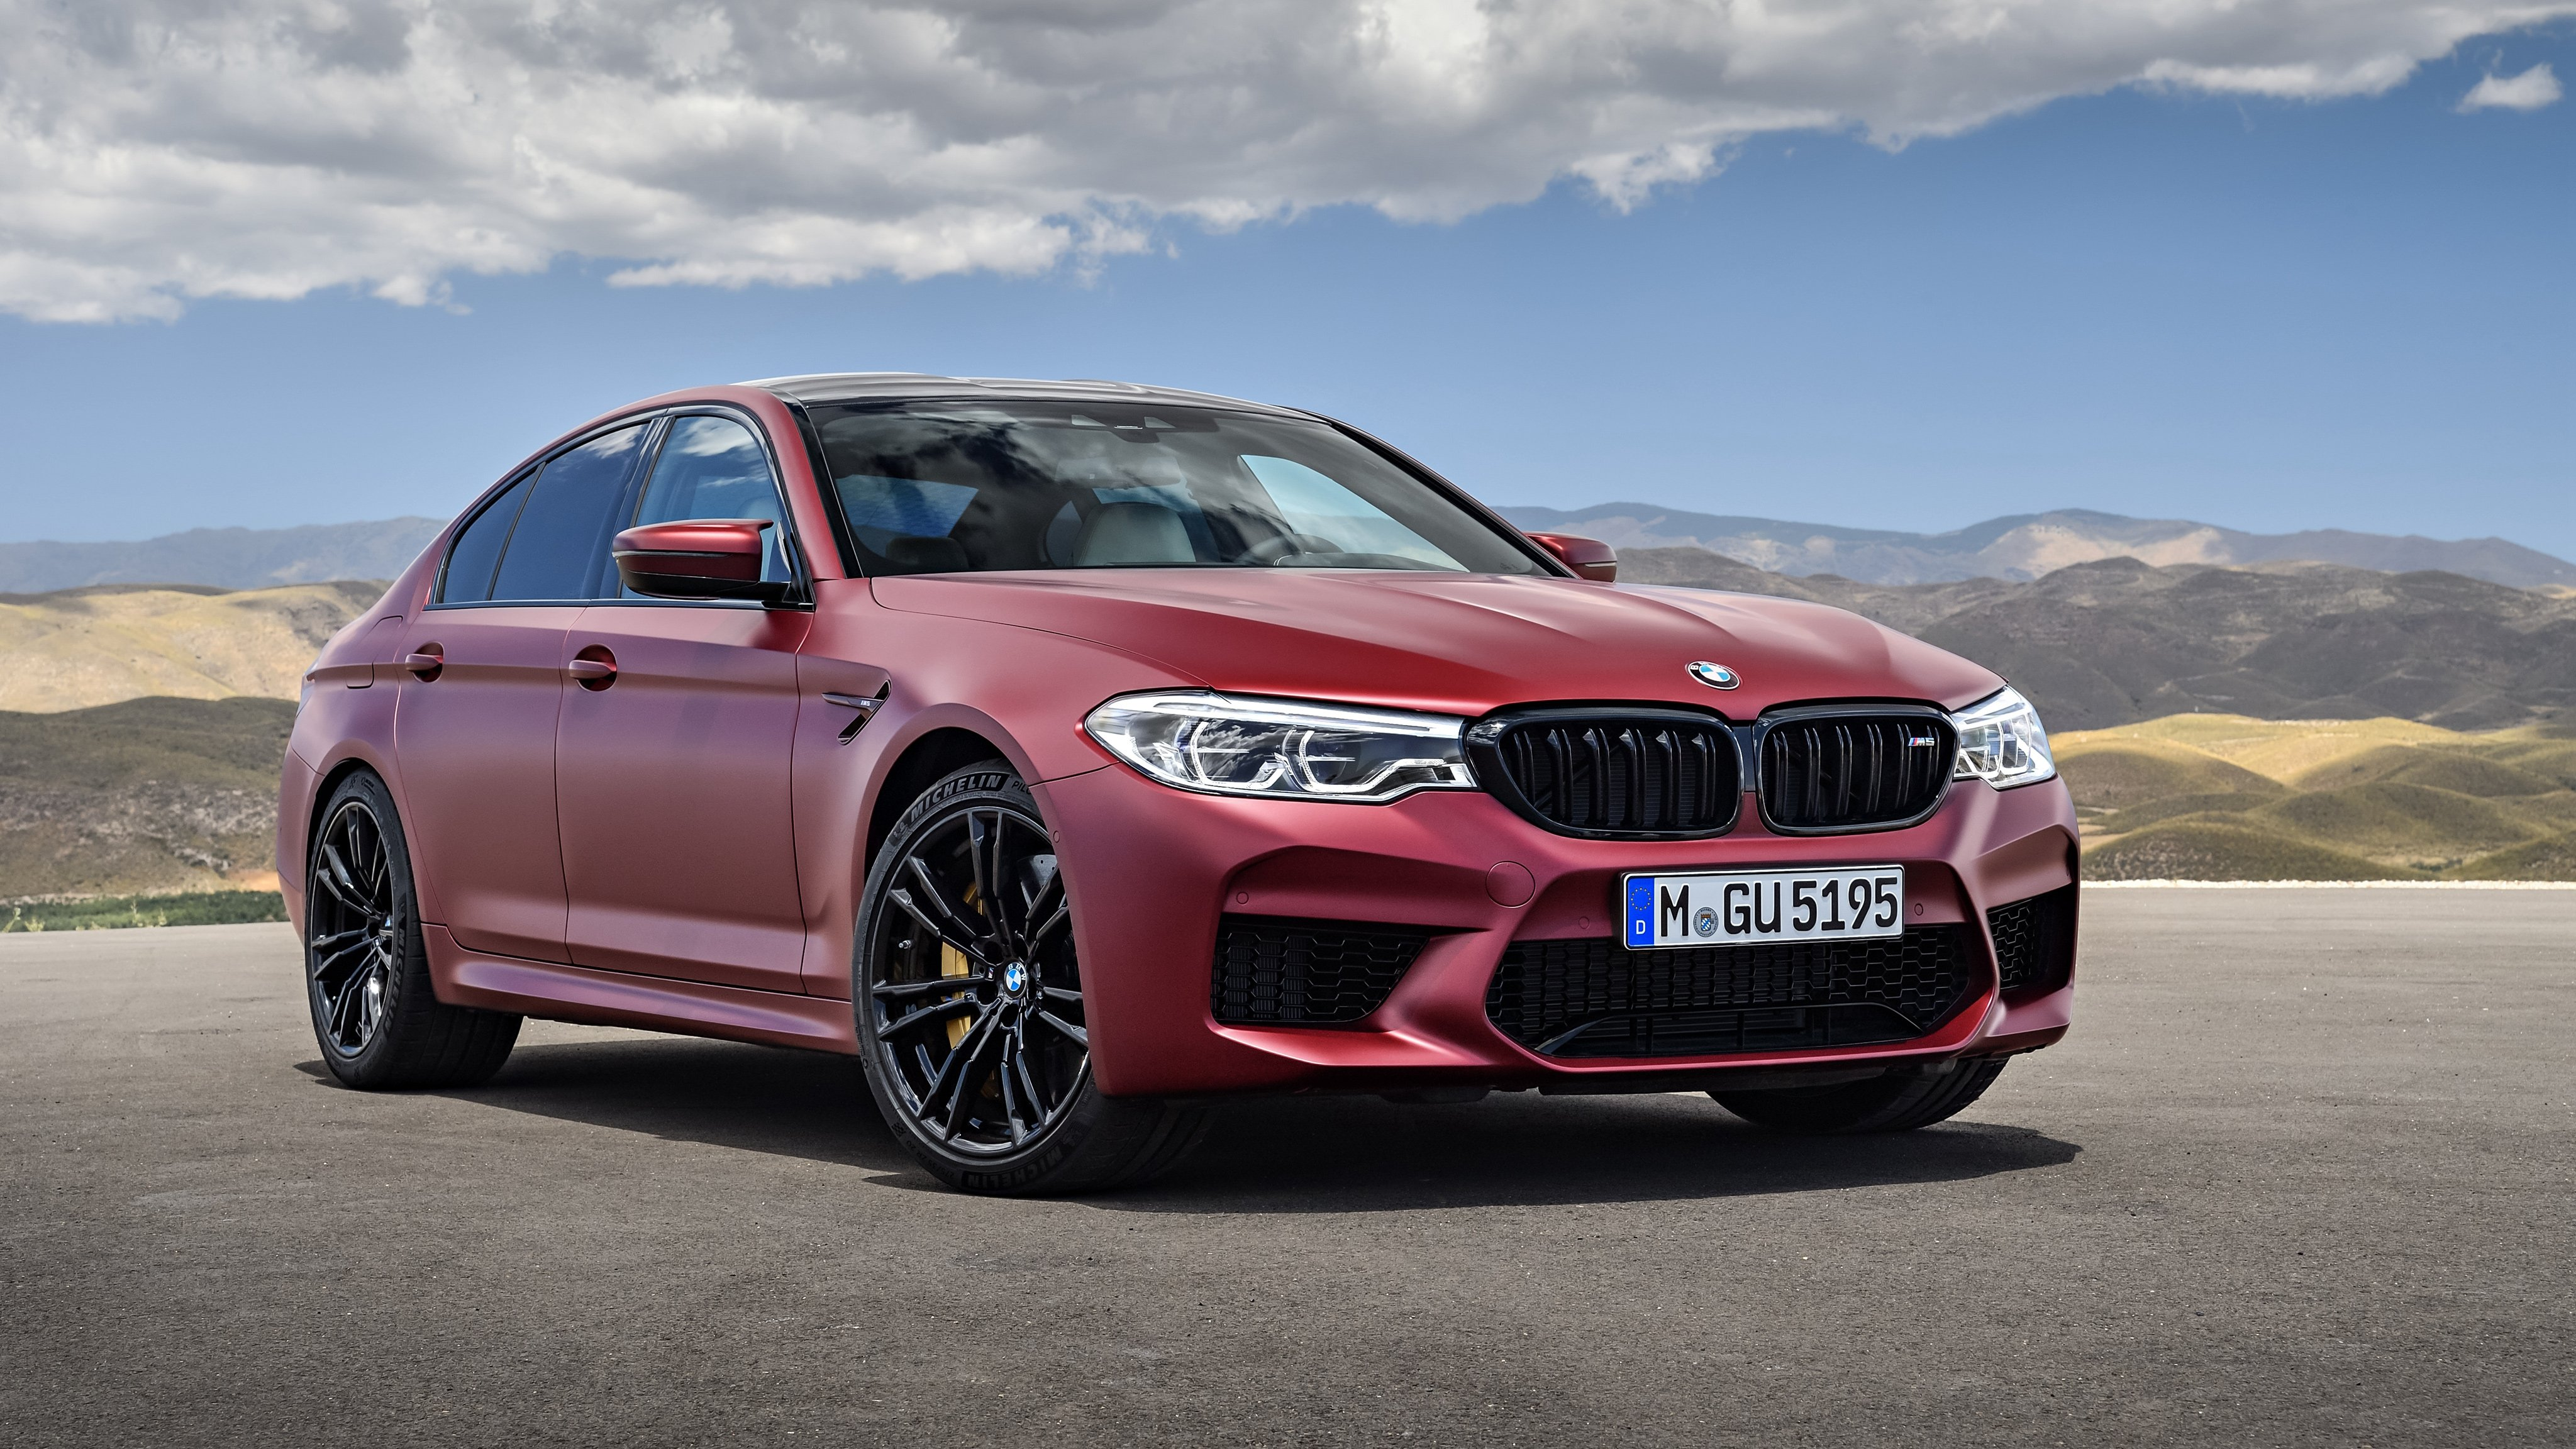 2018 BMW M5 First Edition Wallpaper HD Car Wallpapers 4096x2304